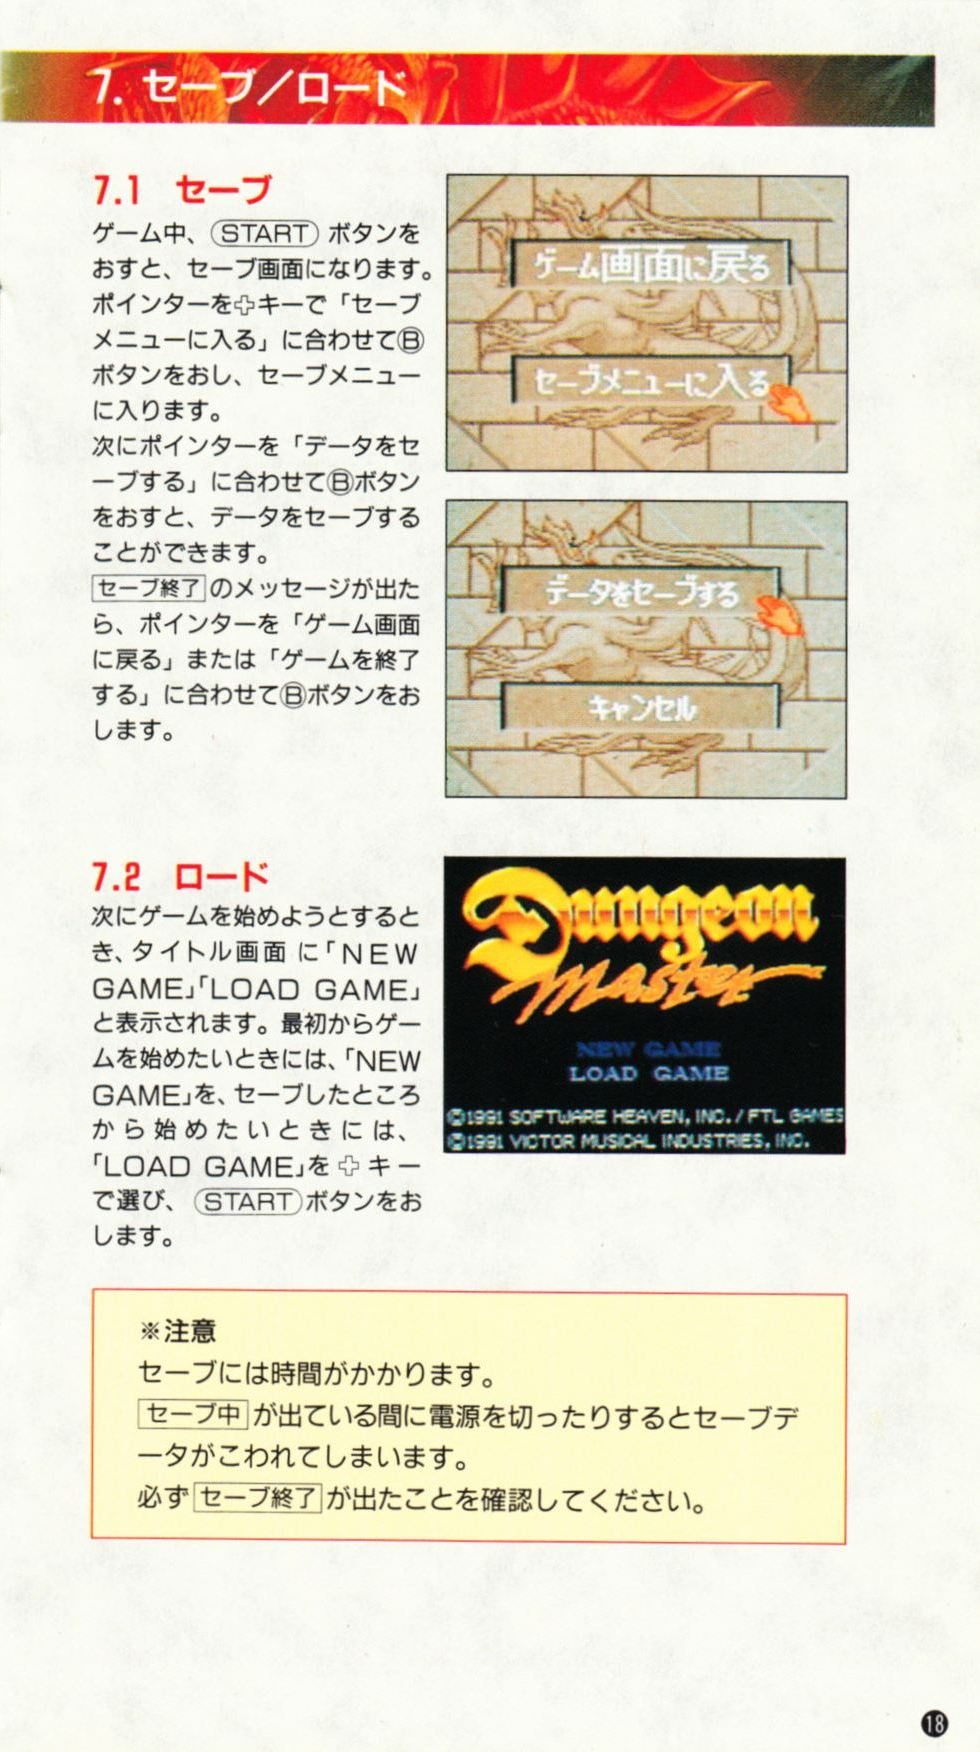 Game - Dungeon Master - JP - Super Famicom - Manual - Page 021 - Scan